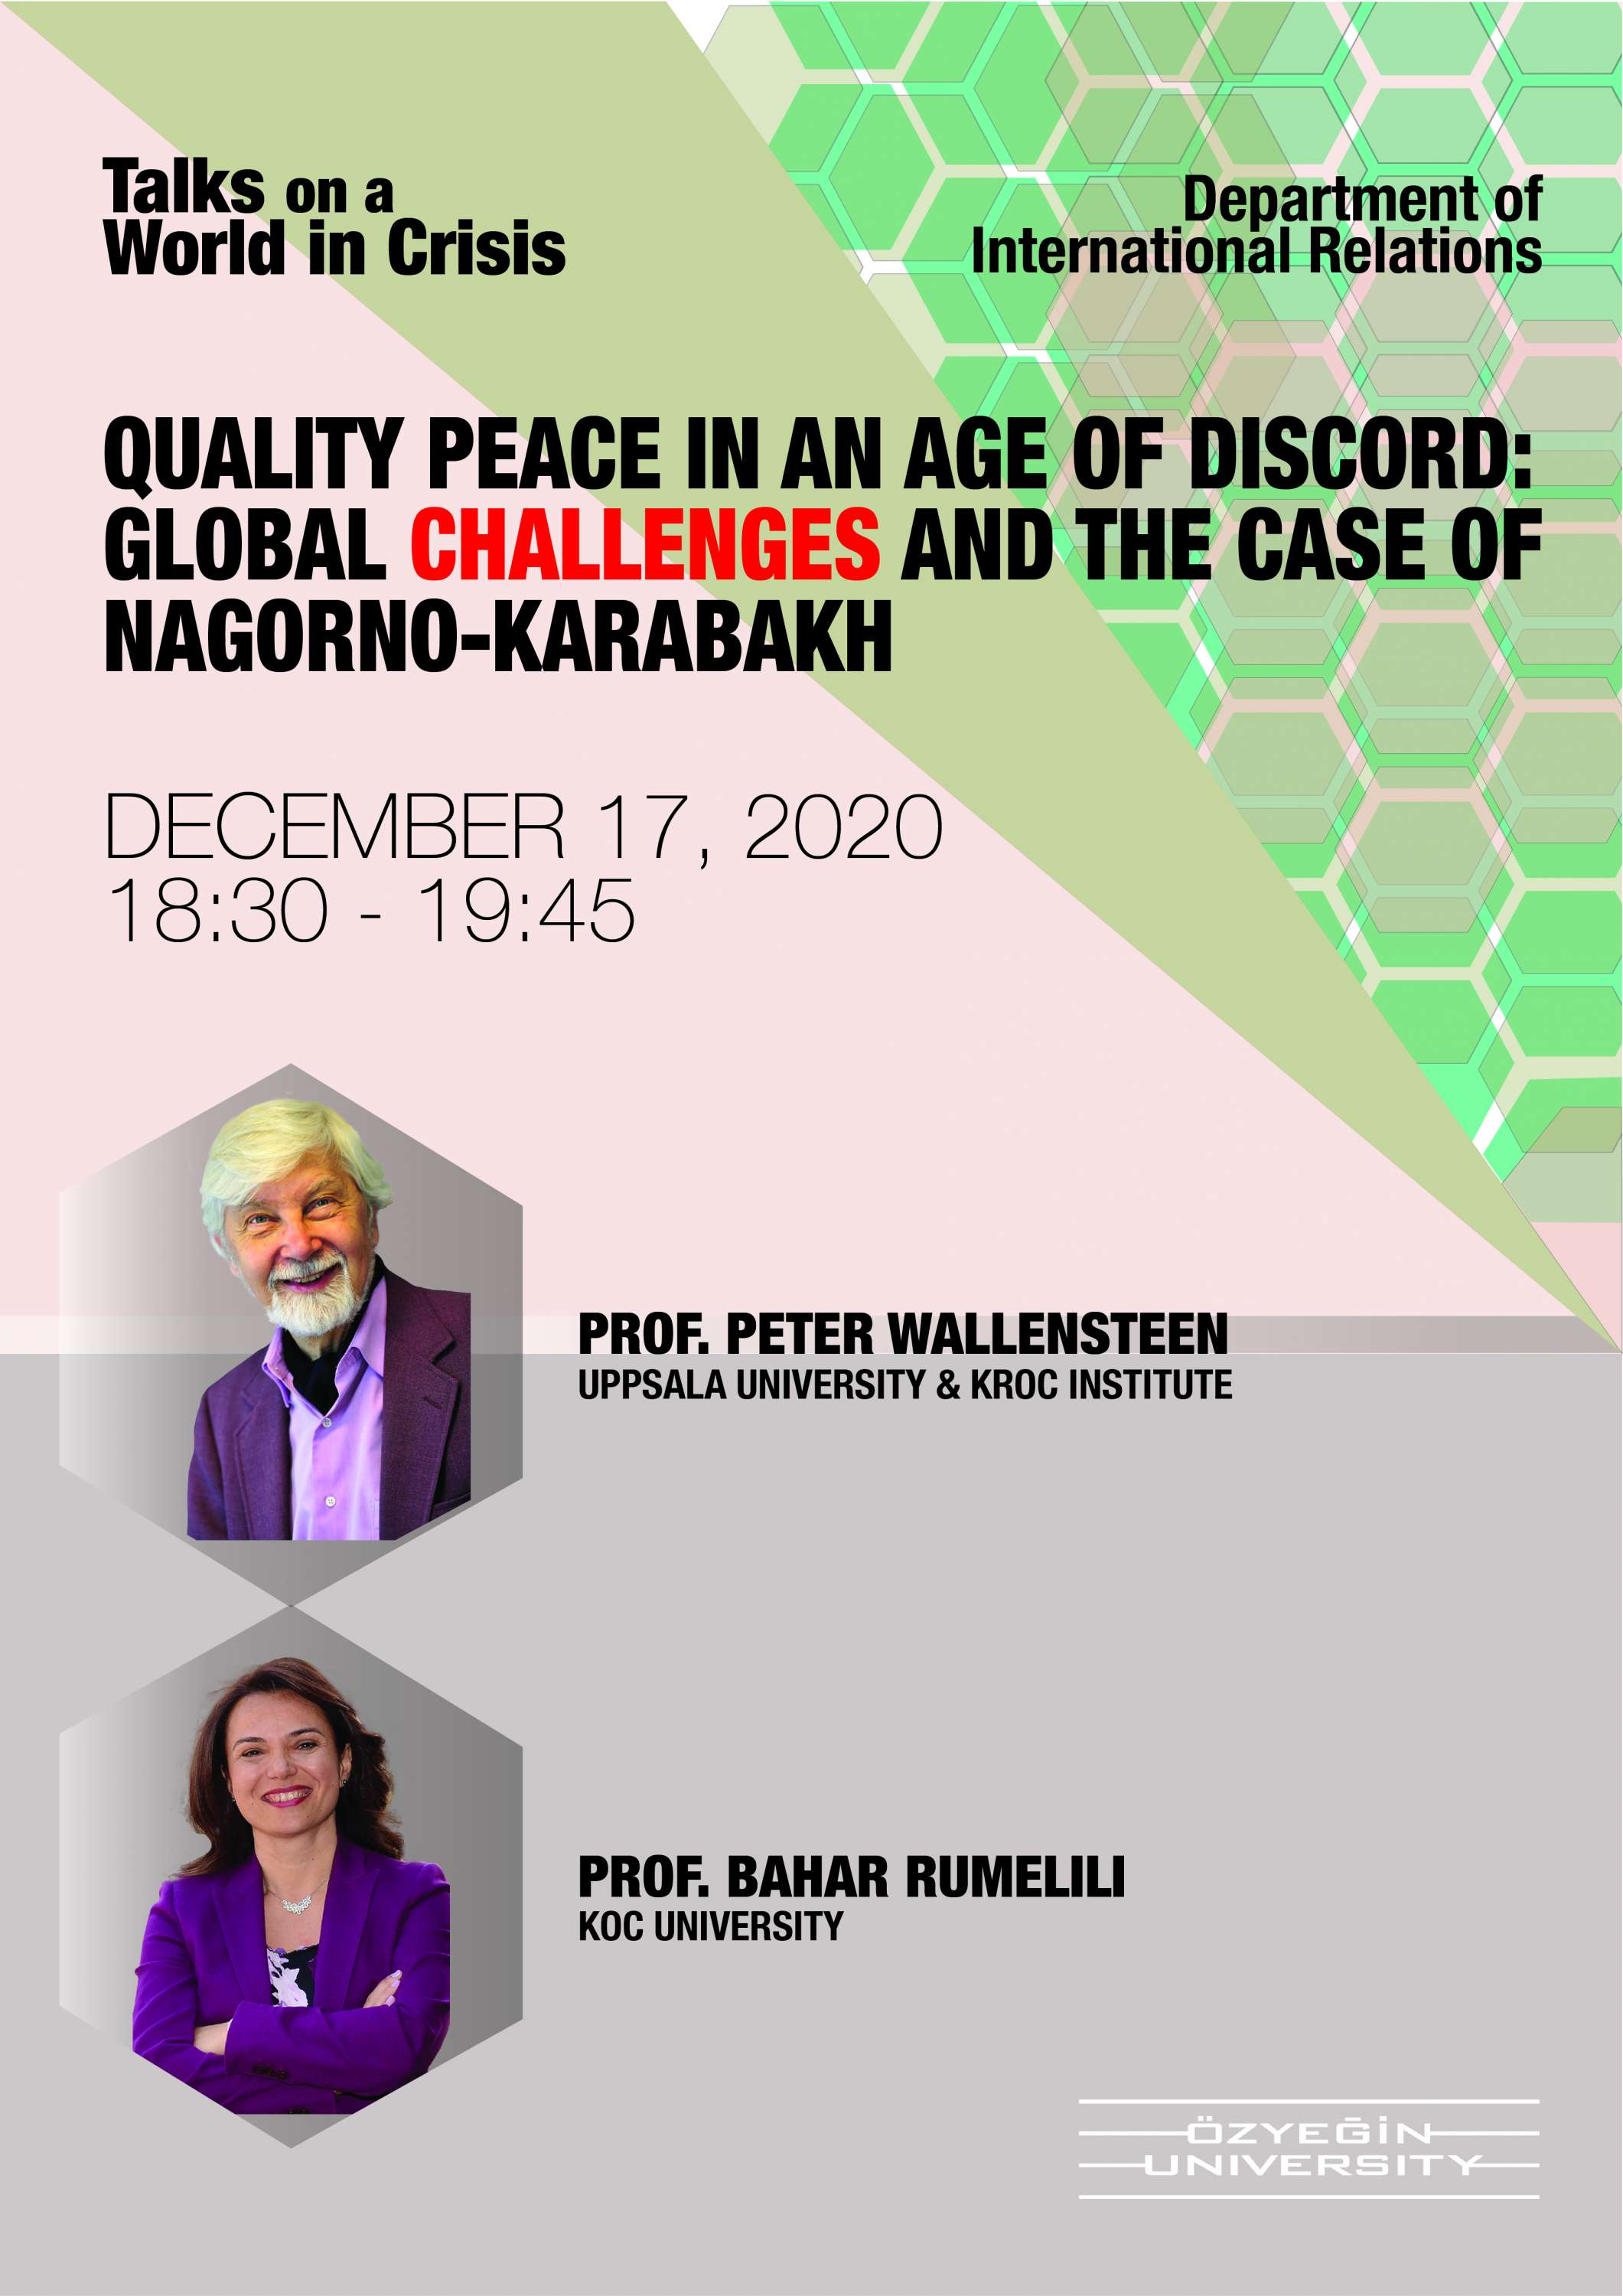 Quality Peace in an Age of Discord